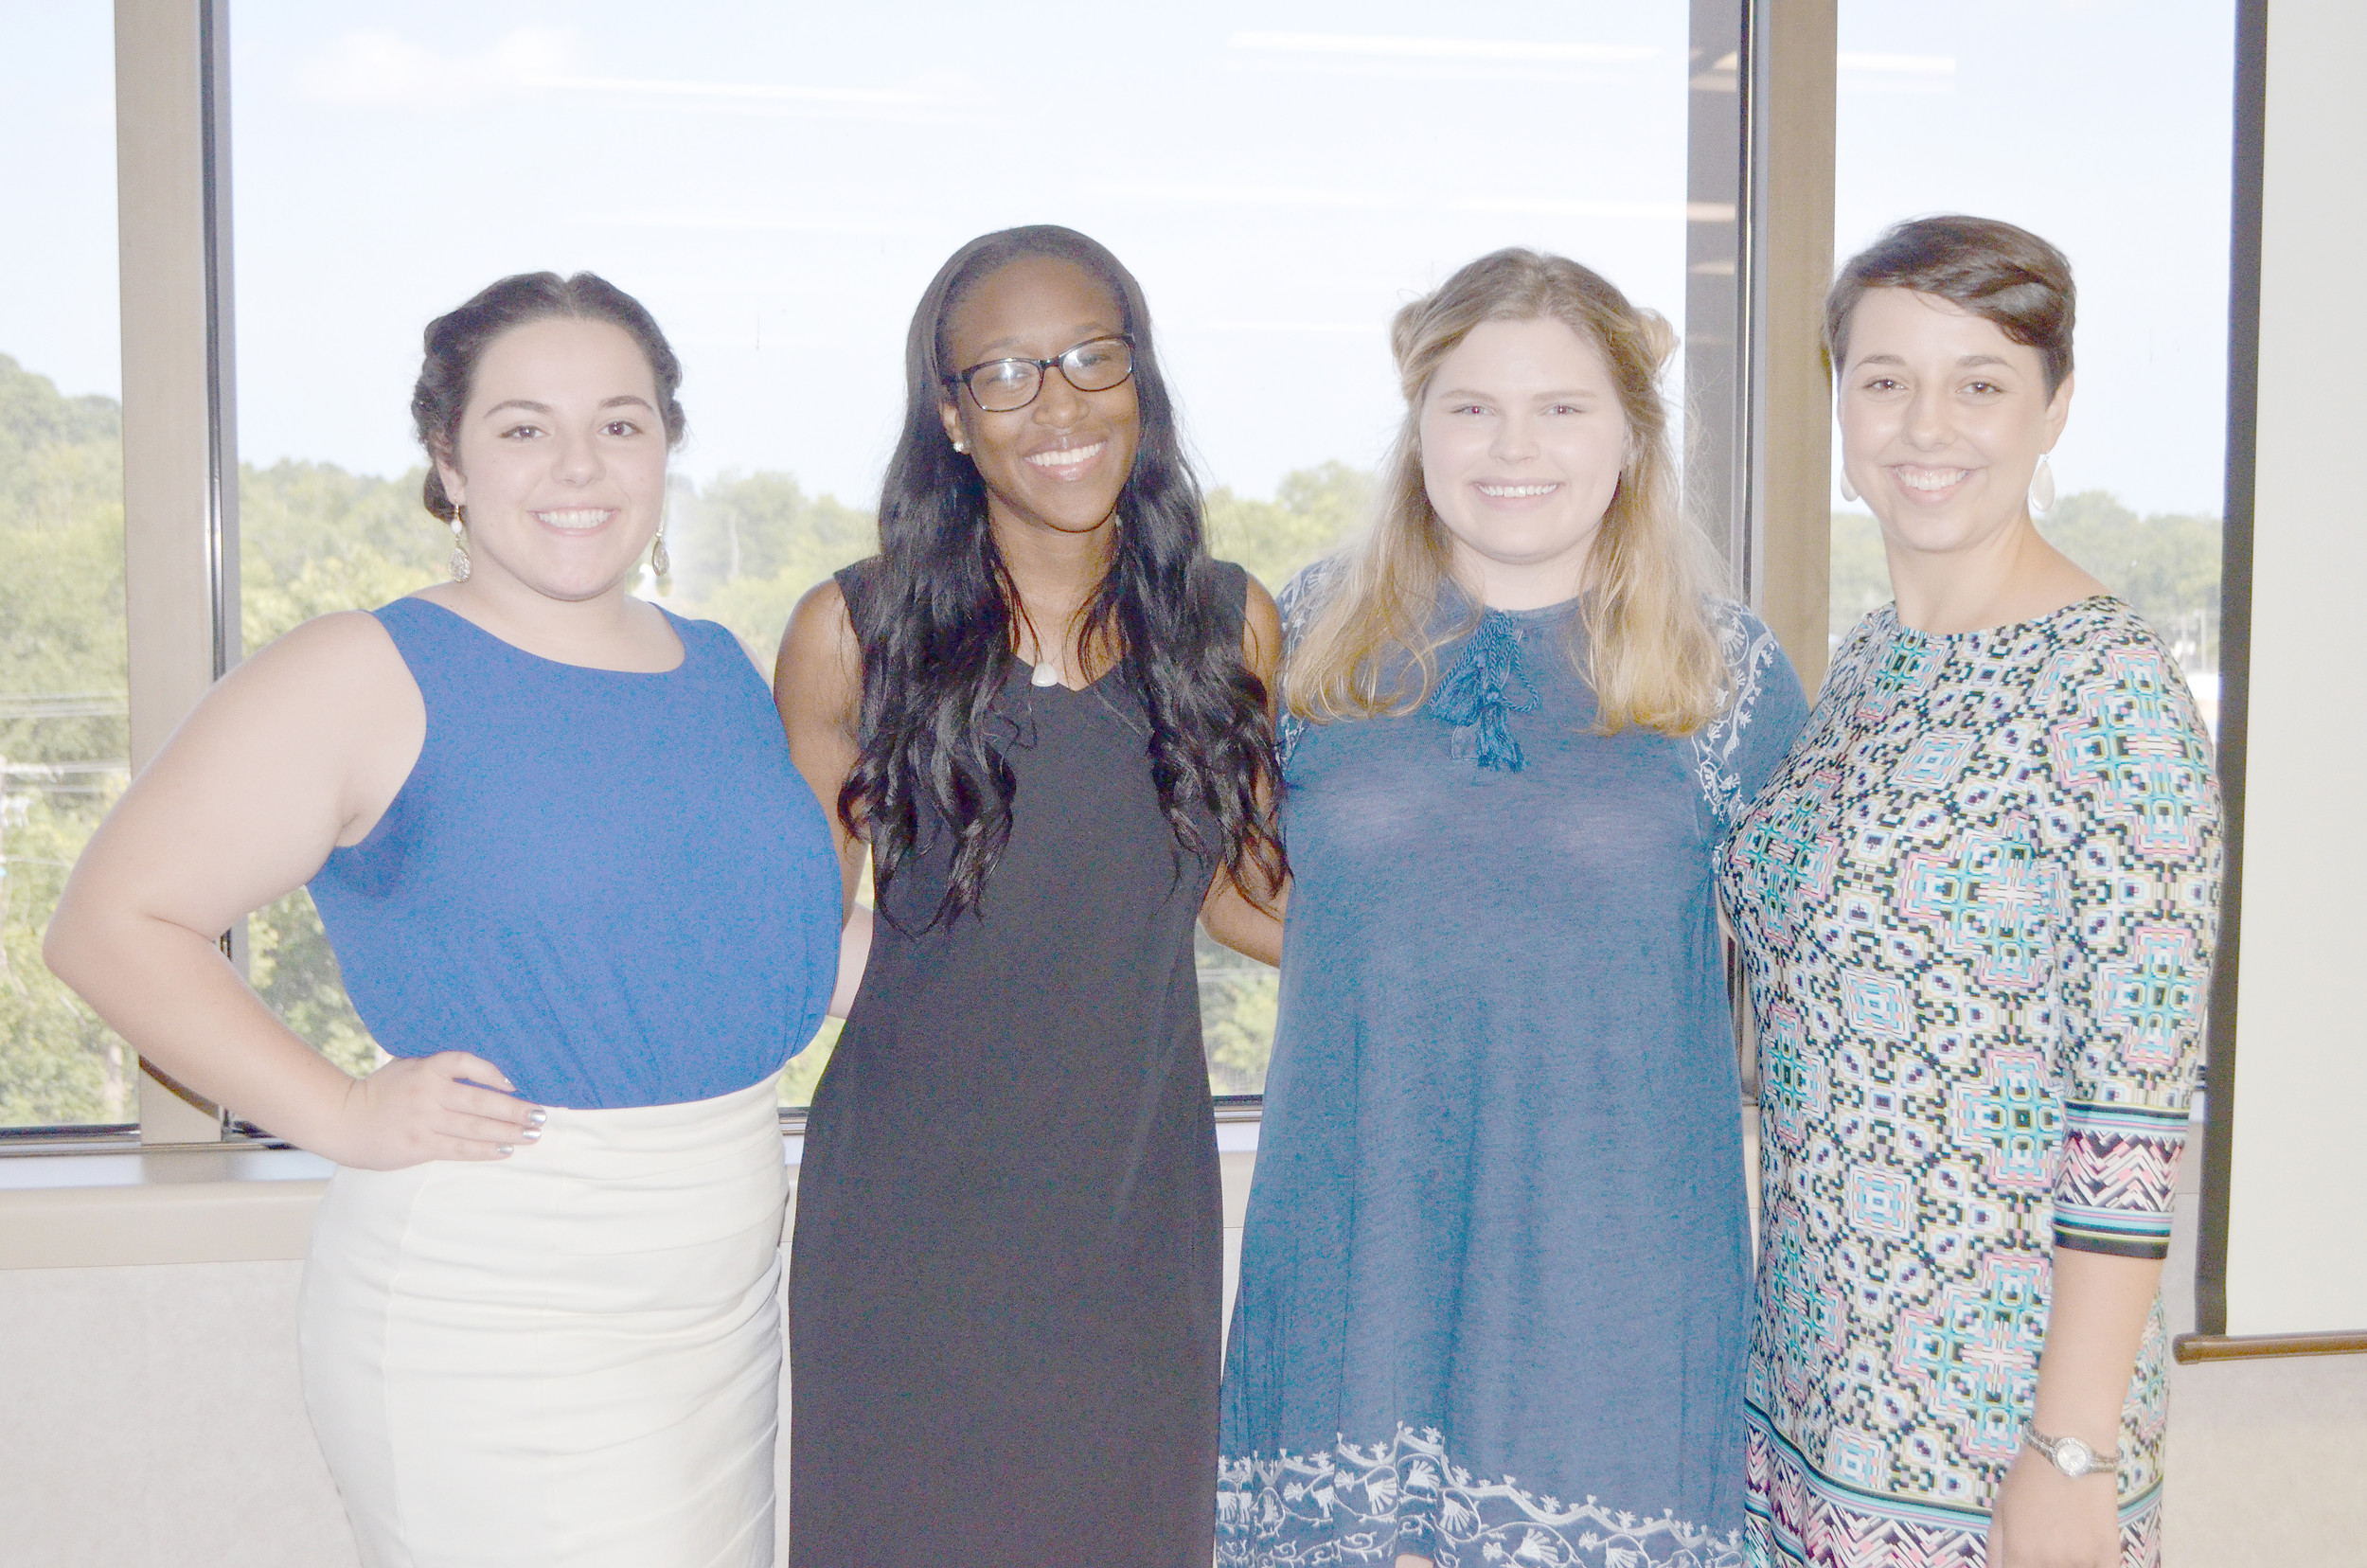 University of Alabama students spent their summer as interns at various nonprofits in Jasper. Pictured, from left to right, Kimberly Oliveira, Brittany Grady, Jenna Minser and Anastasiya Titarenko. Daily Mountain Eagle - Nicole Smith